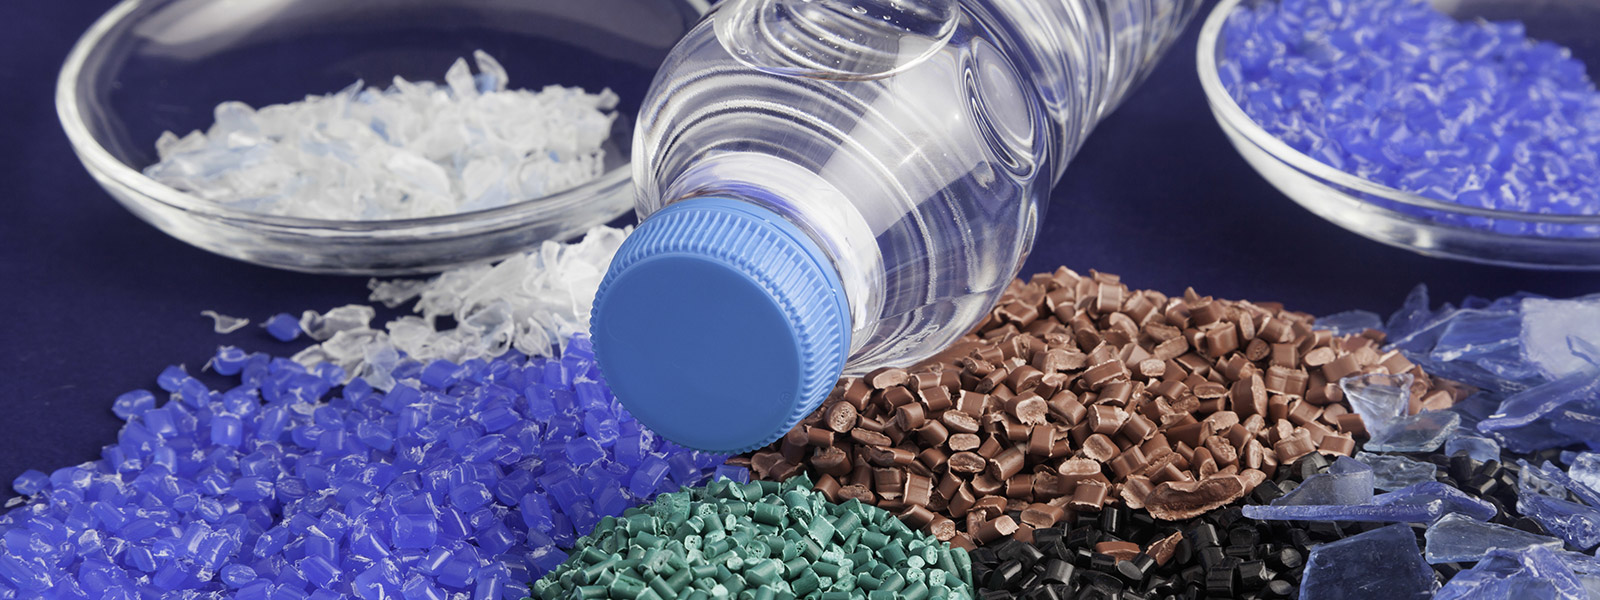 GP Harmon Enters Plastics Recycling Processing